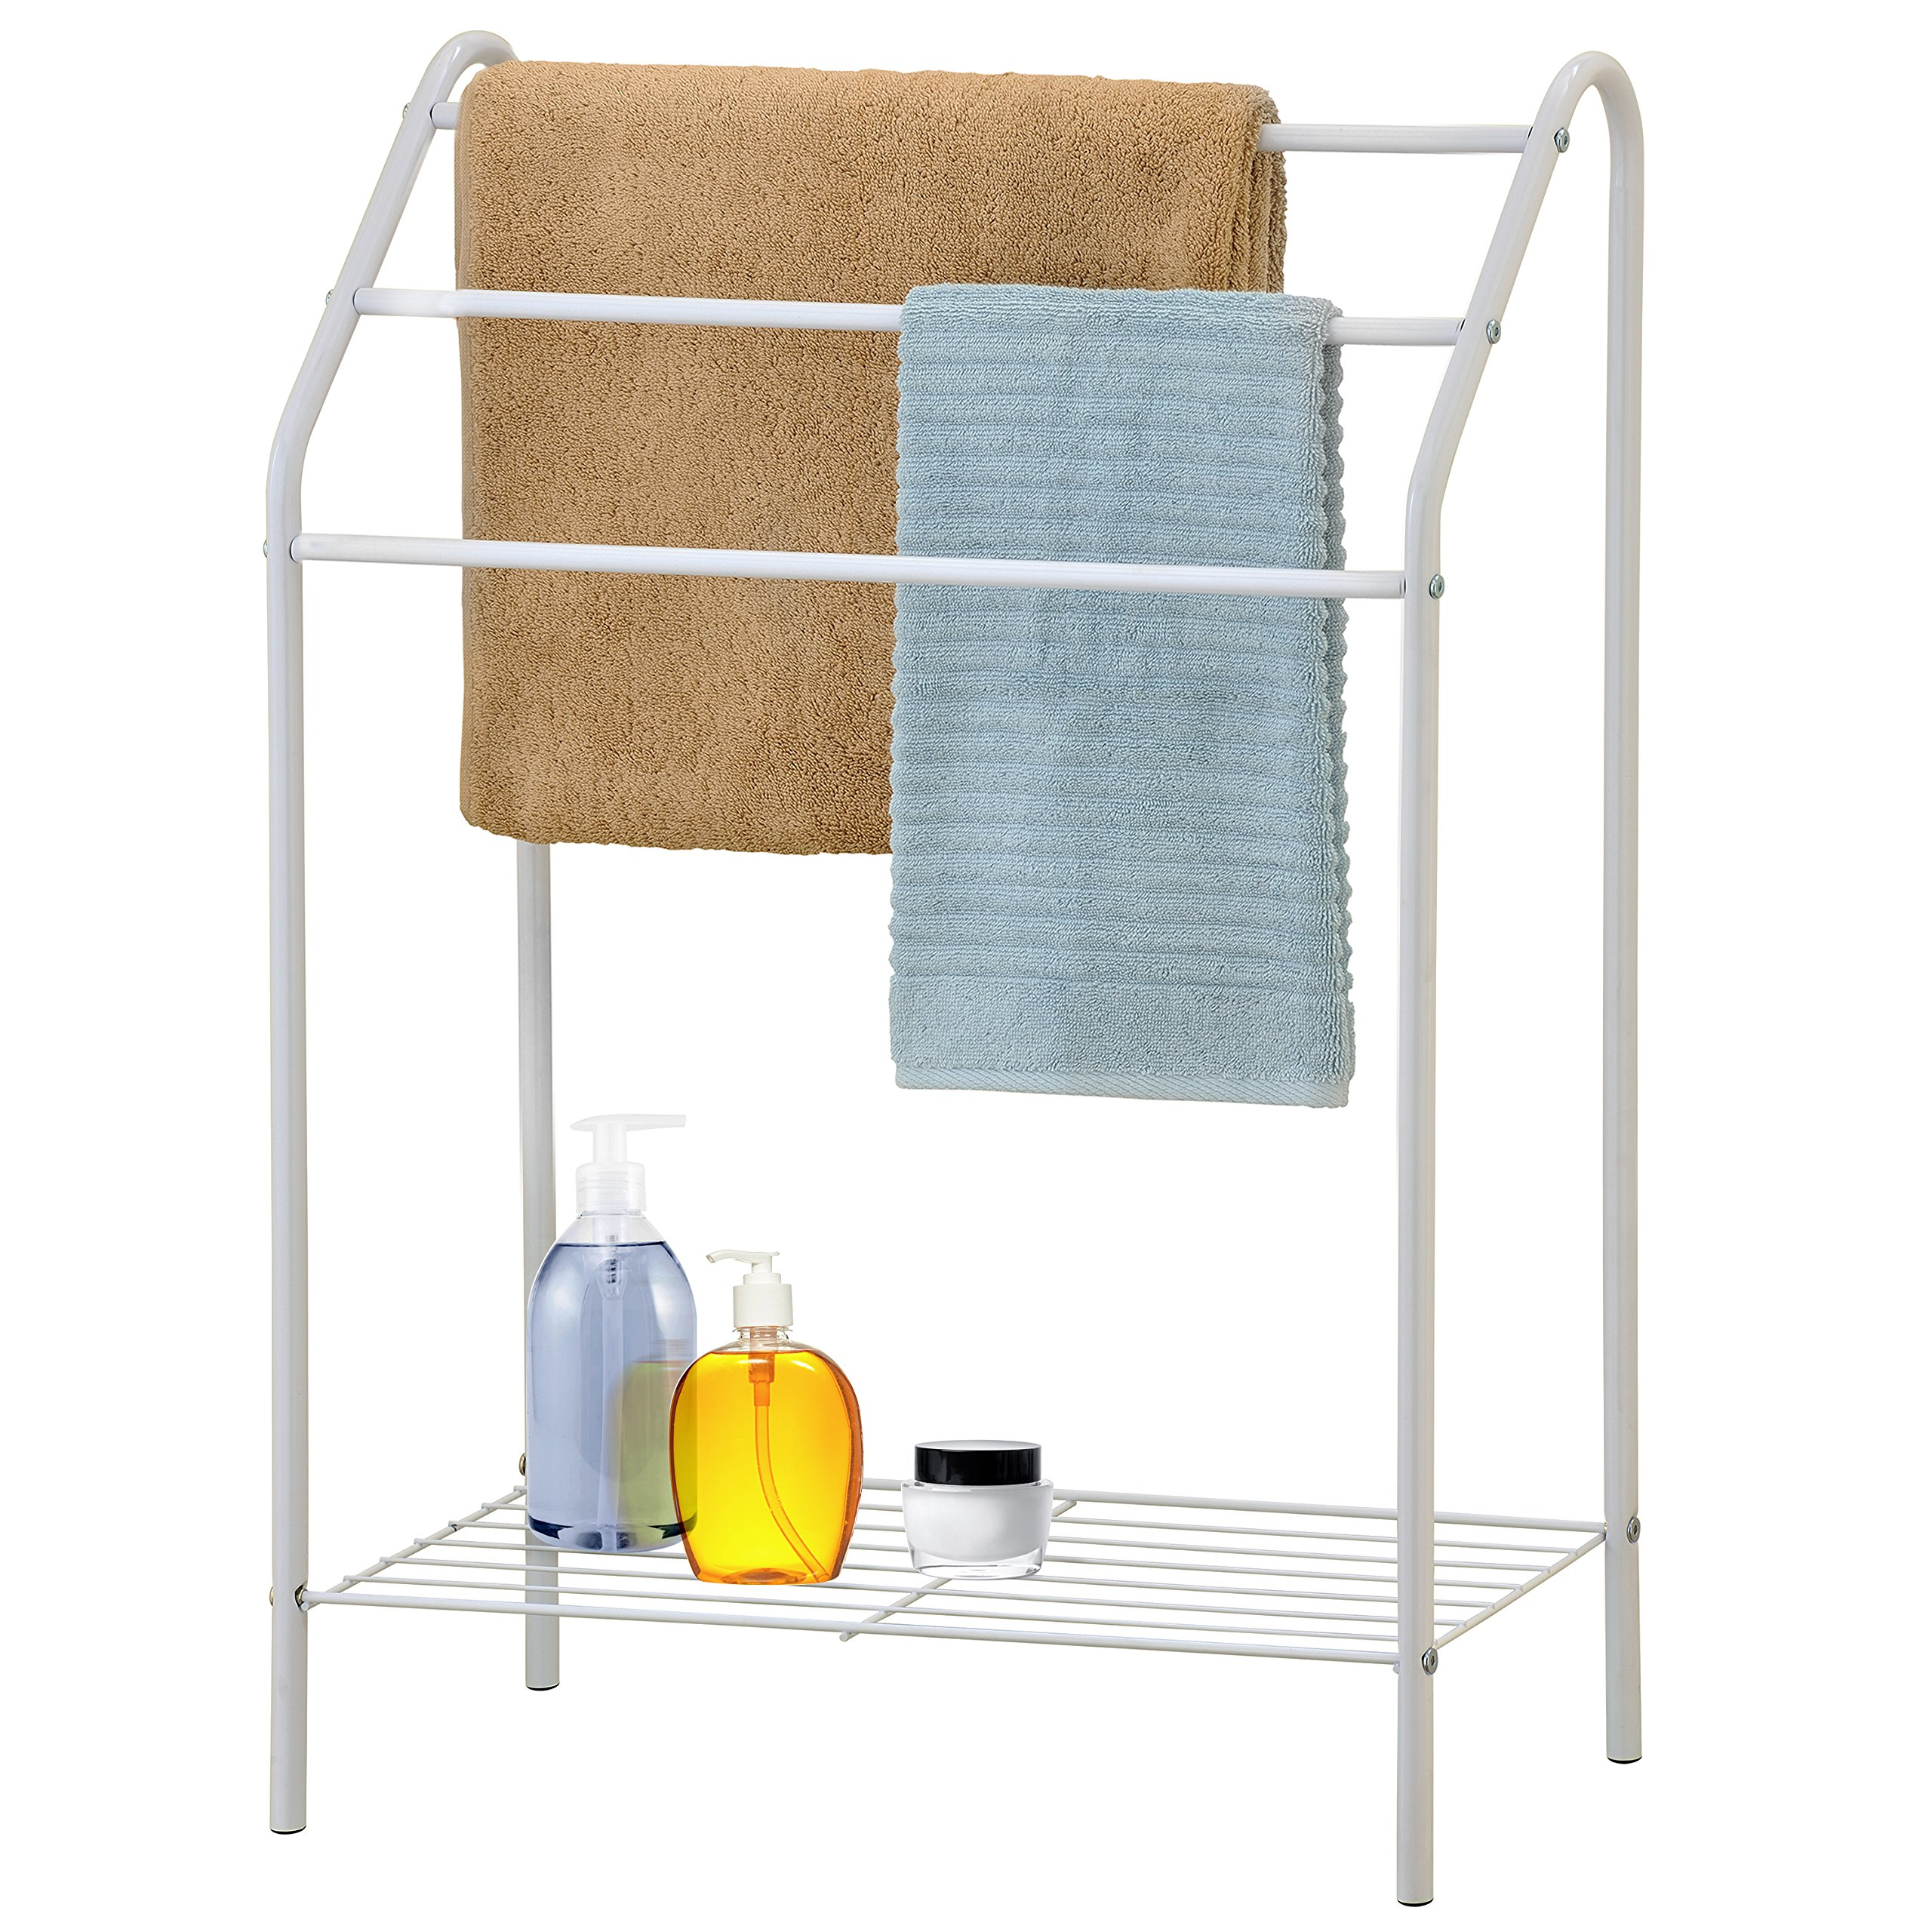 Cheap 3 Tier Metal Towel Rack, find 3 Tier Metal Towel Rack deals on ...